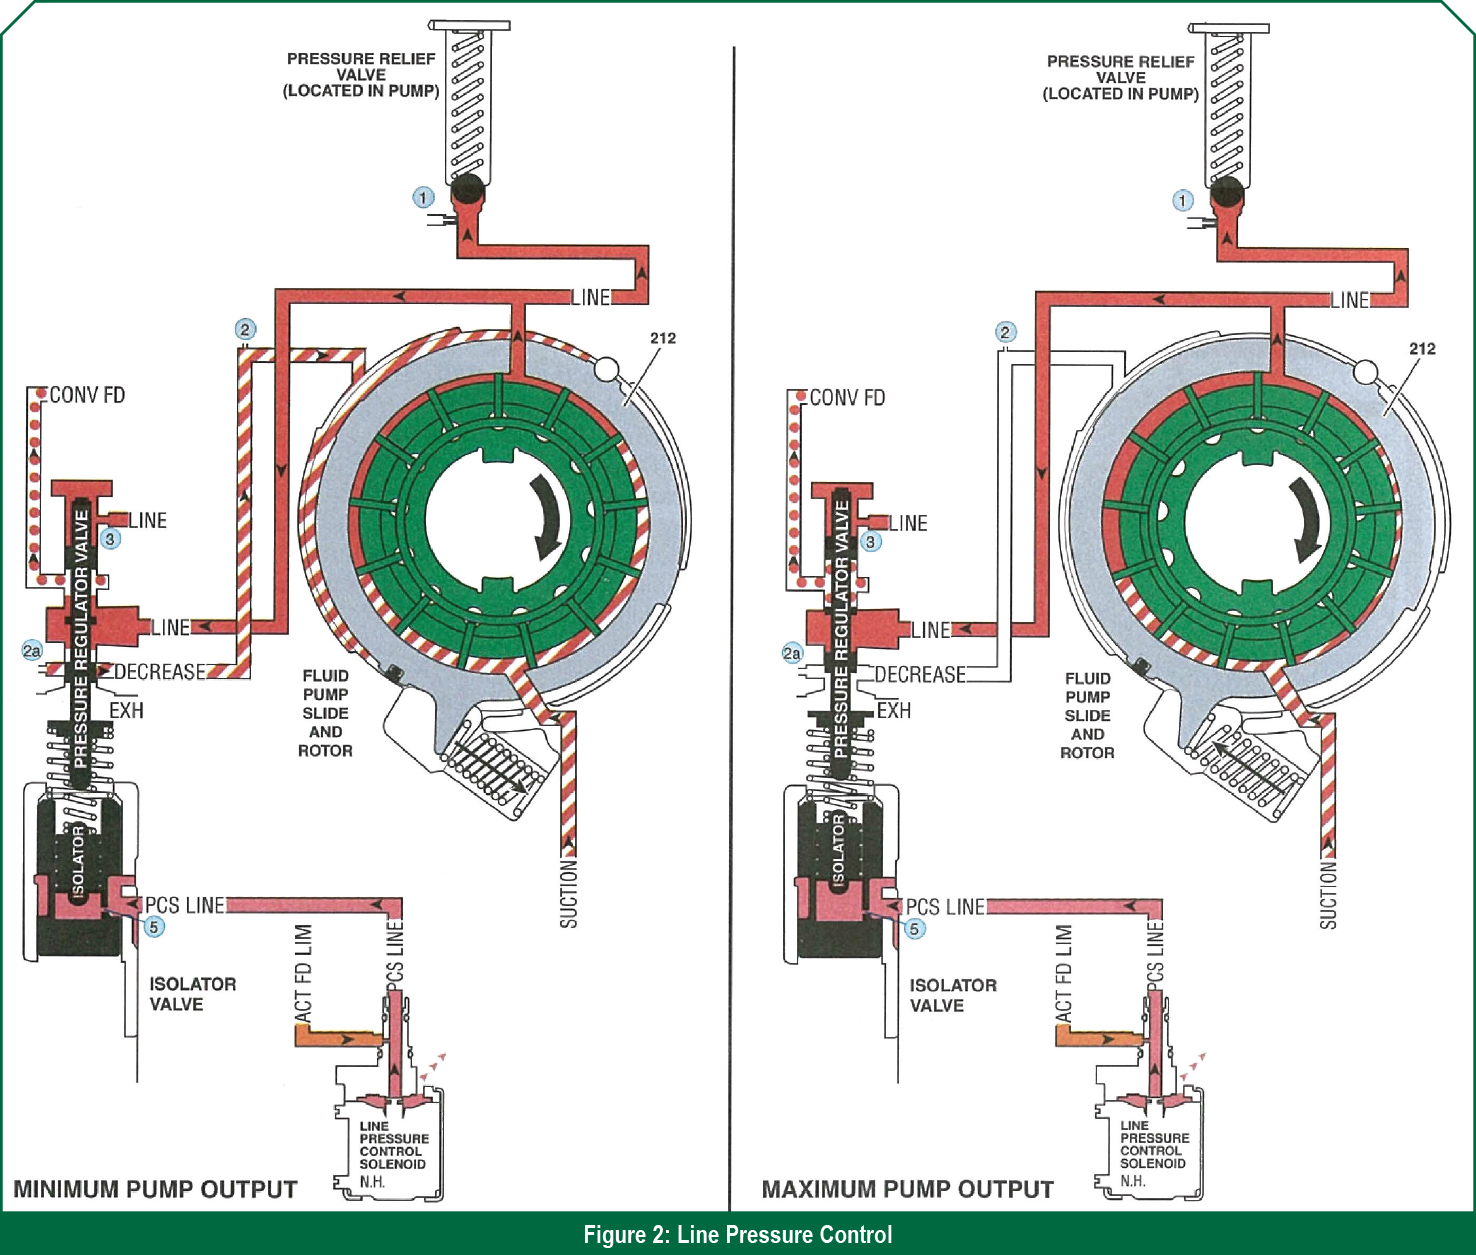 hight resolution of the pcs applies pressure to the isolator valve which in turn forces the pressure regulator valve to increase line or boost pressure in response to